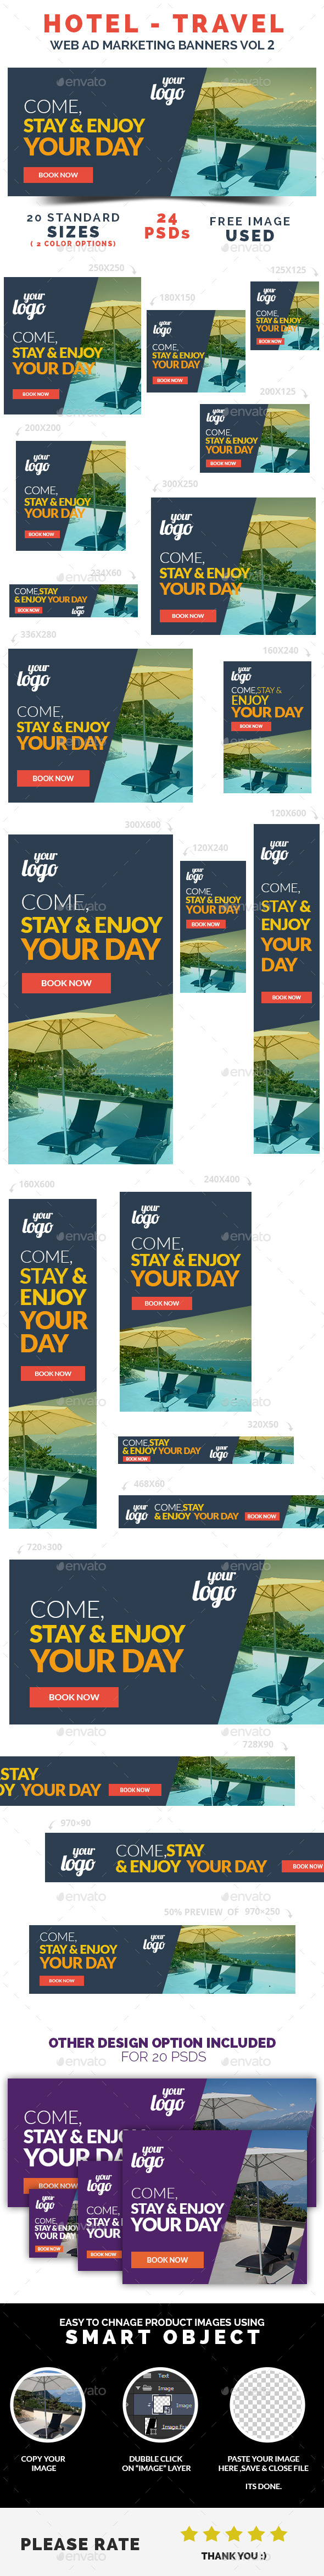 Hotel / Travel Web Ad Marketing Banners Vol 2 - Banners & Ads Web Elements